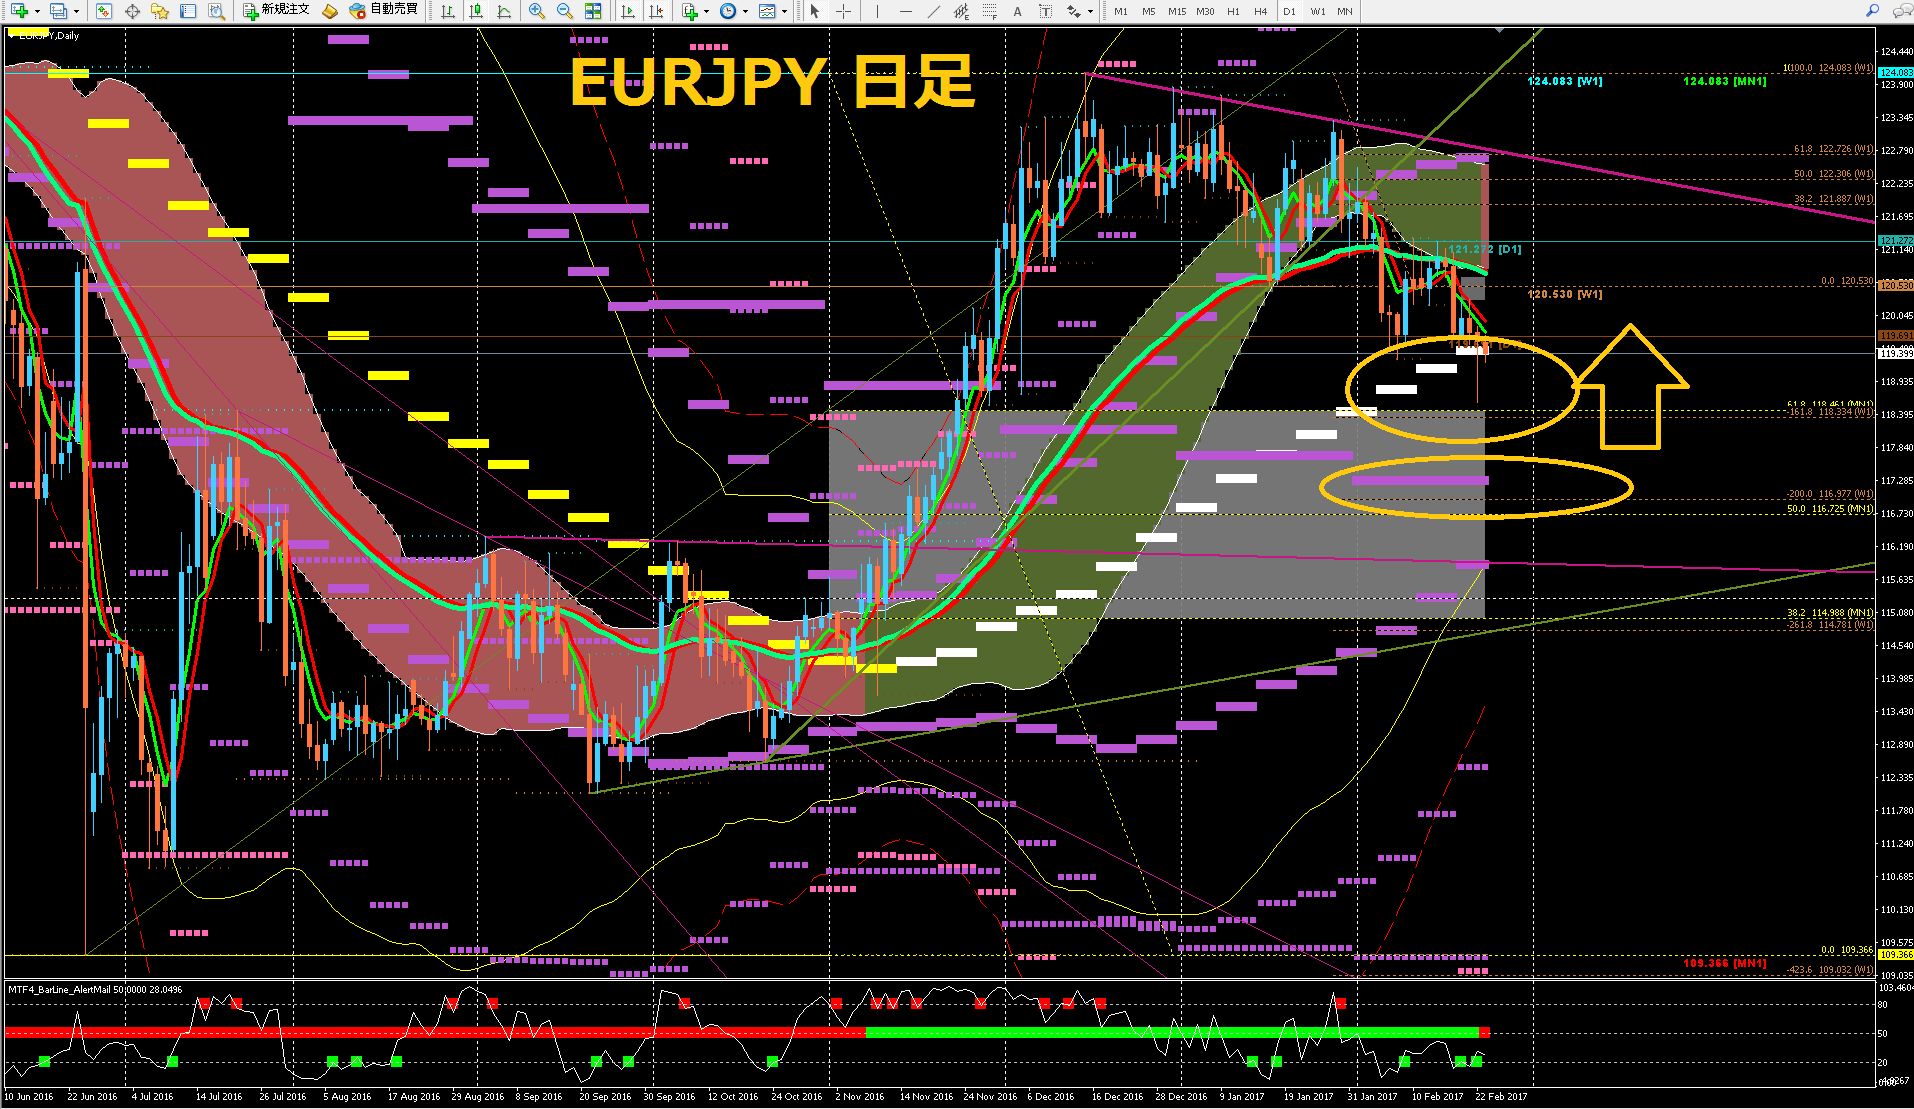 eurjpy_20170223.png